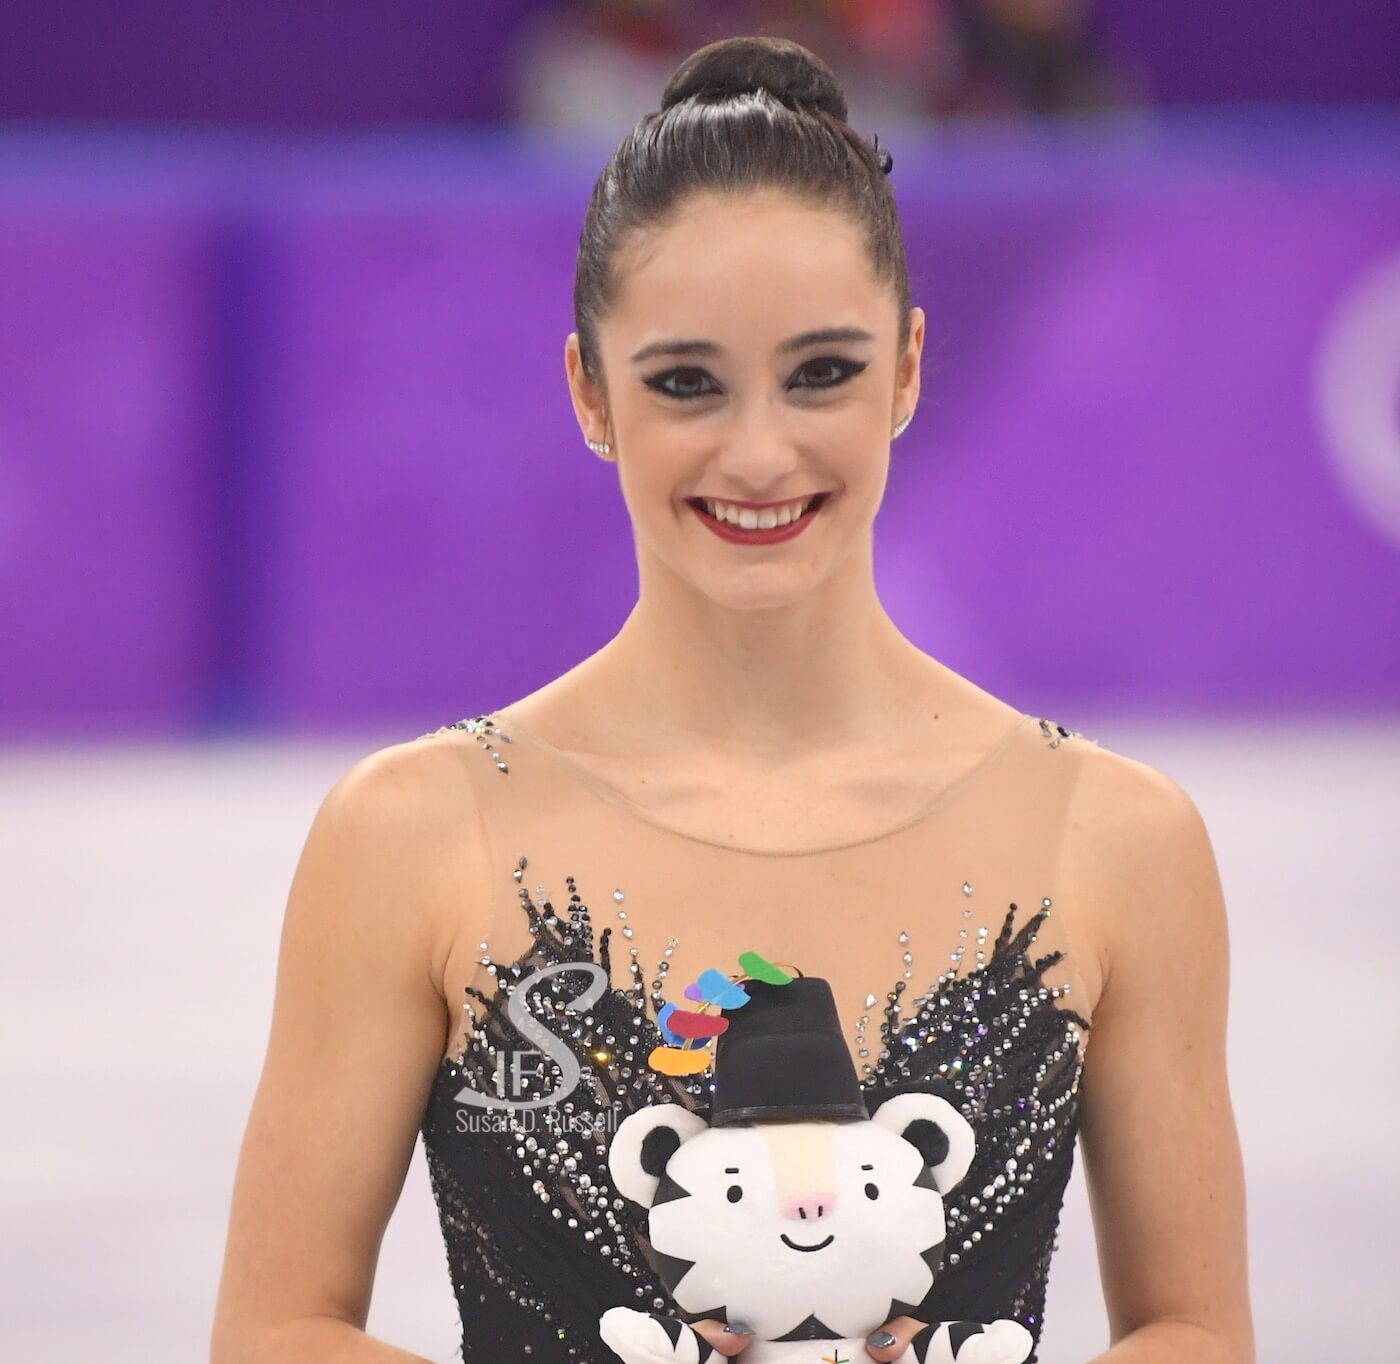 Kaetlyn Osmond hot picture